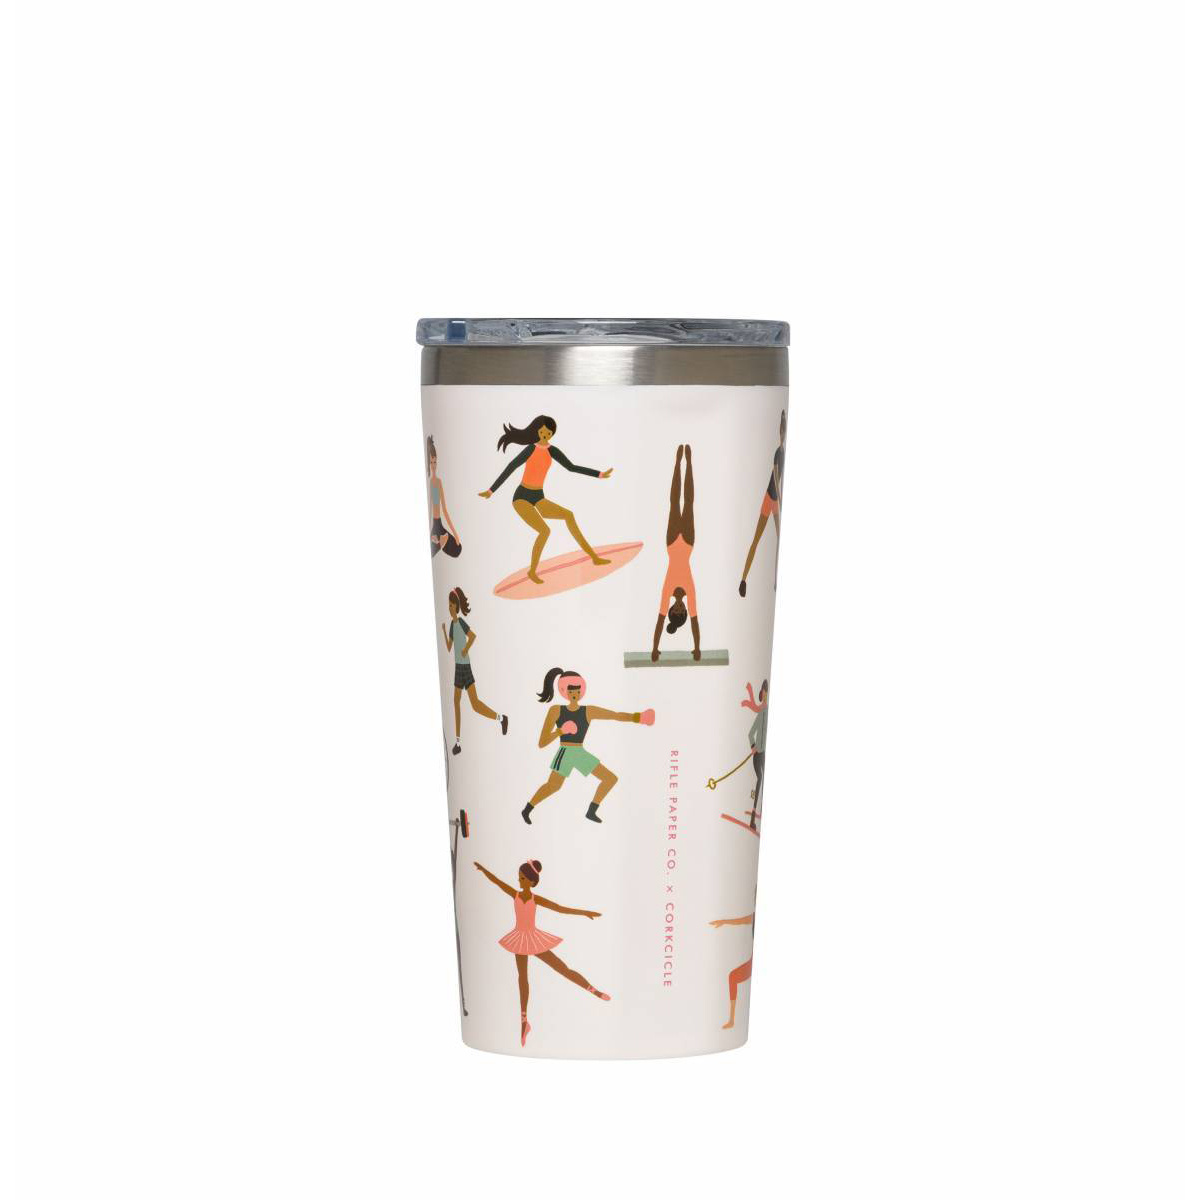 Corkcicle Corkcicle x Rifle Paper Co. Sports Girls Tumbler